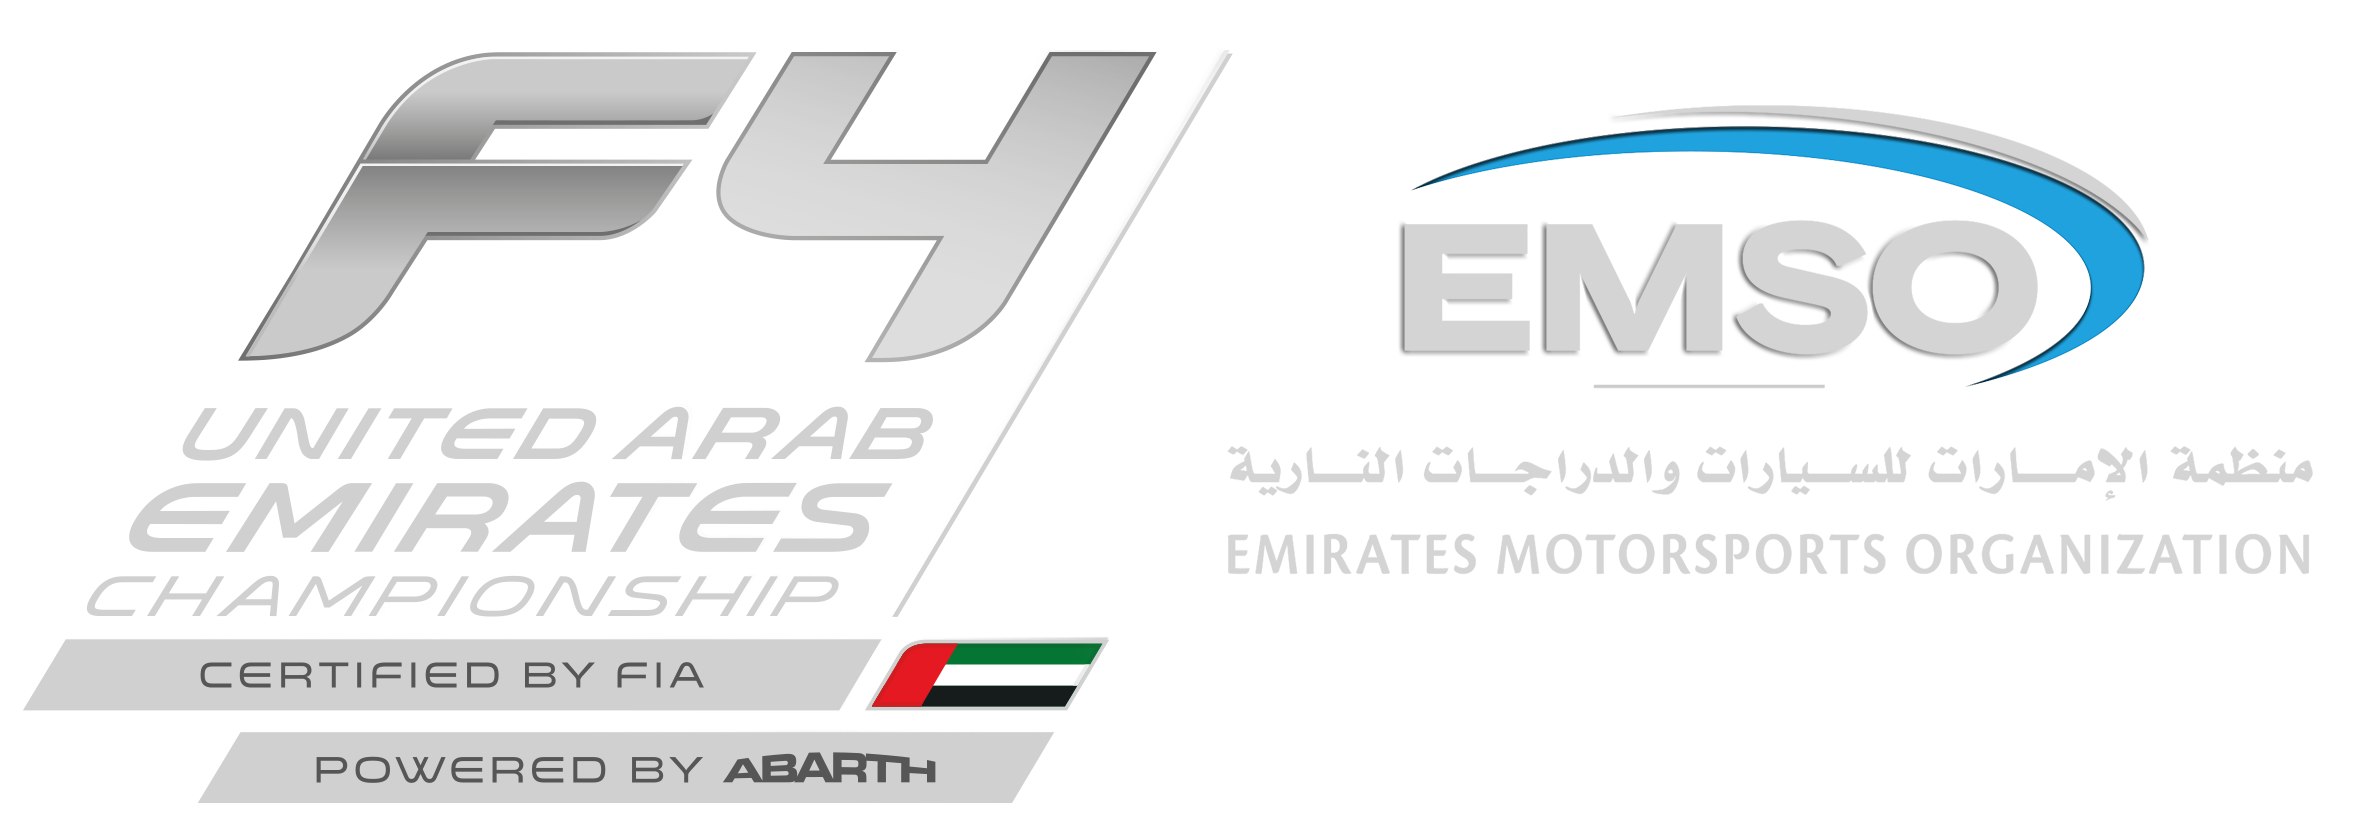 F4UAE Mockup 2019-2020_Reversed.png